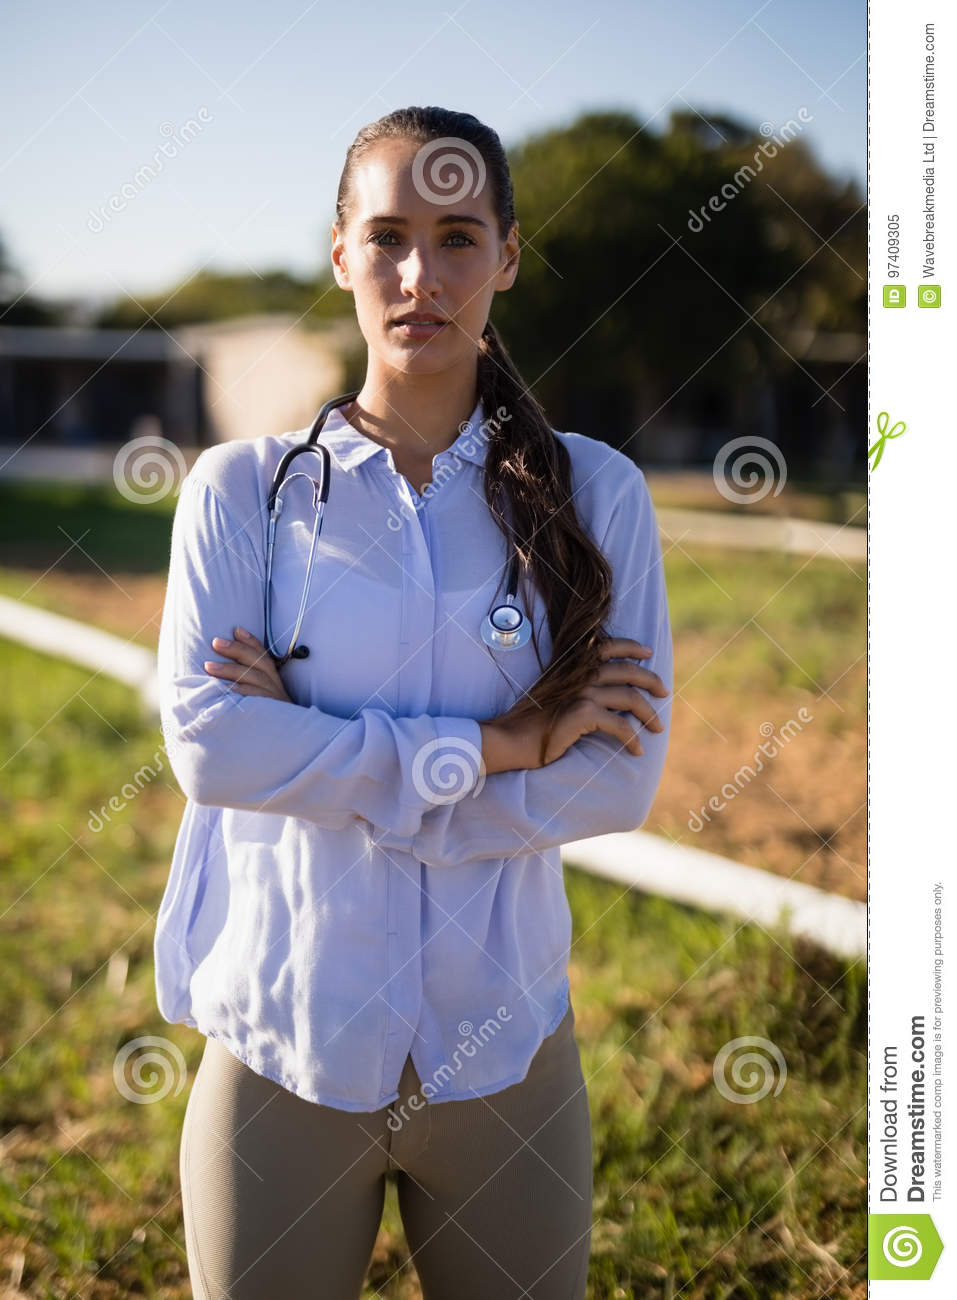 Portrait of female vet with arms crossed standing at barn